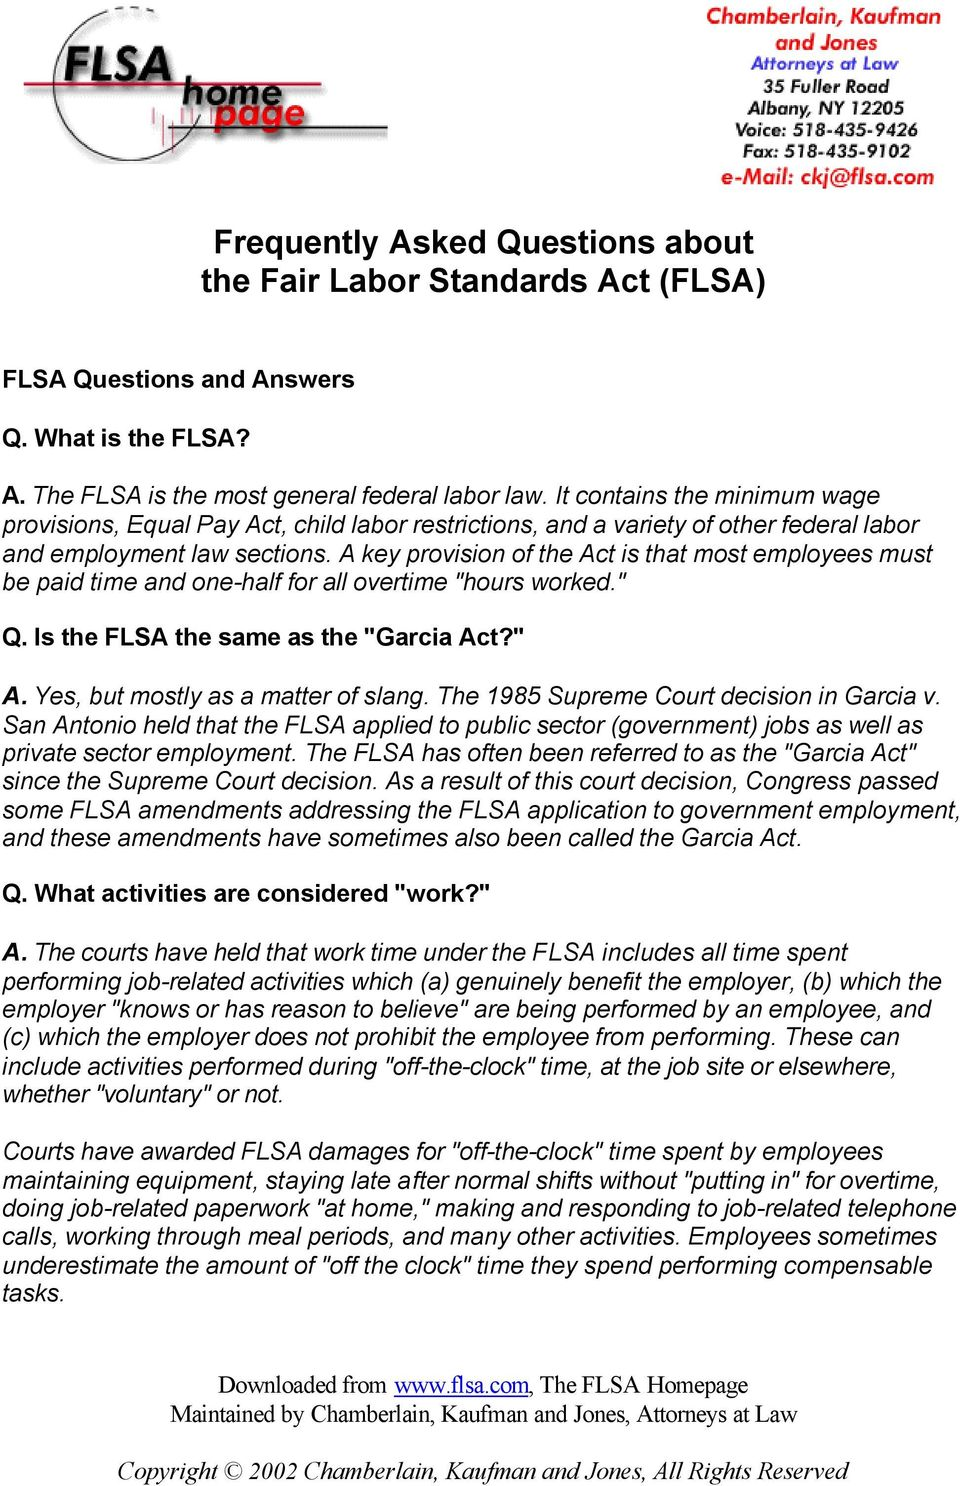 "A key provision of the Act is that most employees must be paid time and one-half for all overtime ""hours worked."" Q. Is the FLSA the same as the ""Garcia Act?"" A. Yes, but mostly as a matter of slang."